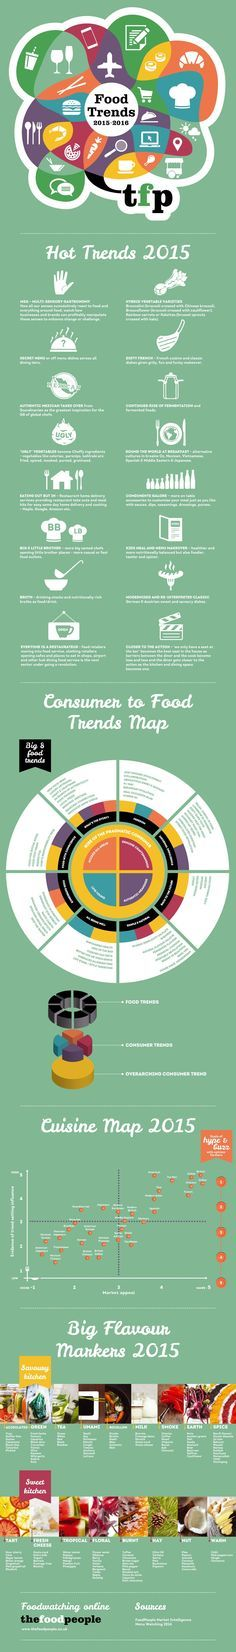 2015 Food Trends Infographic | The Food People